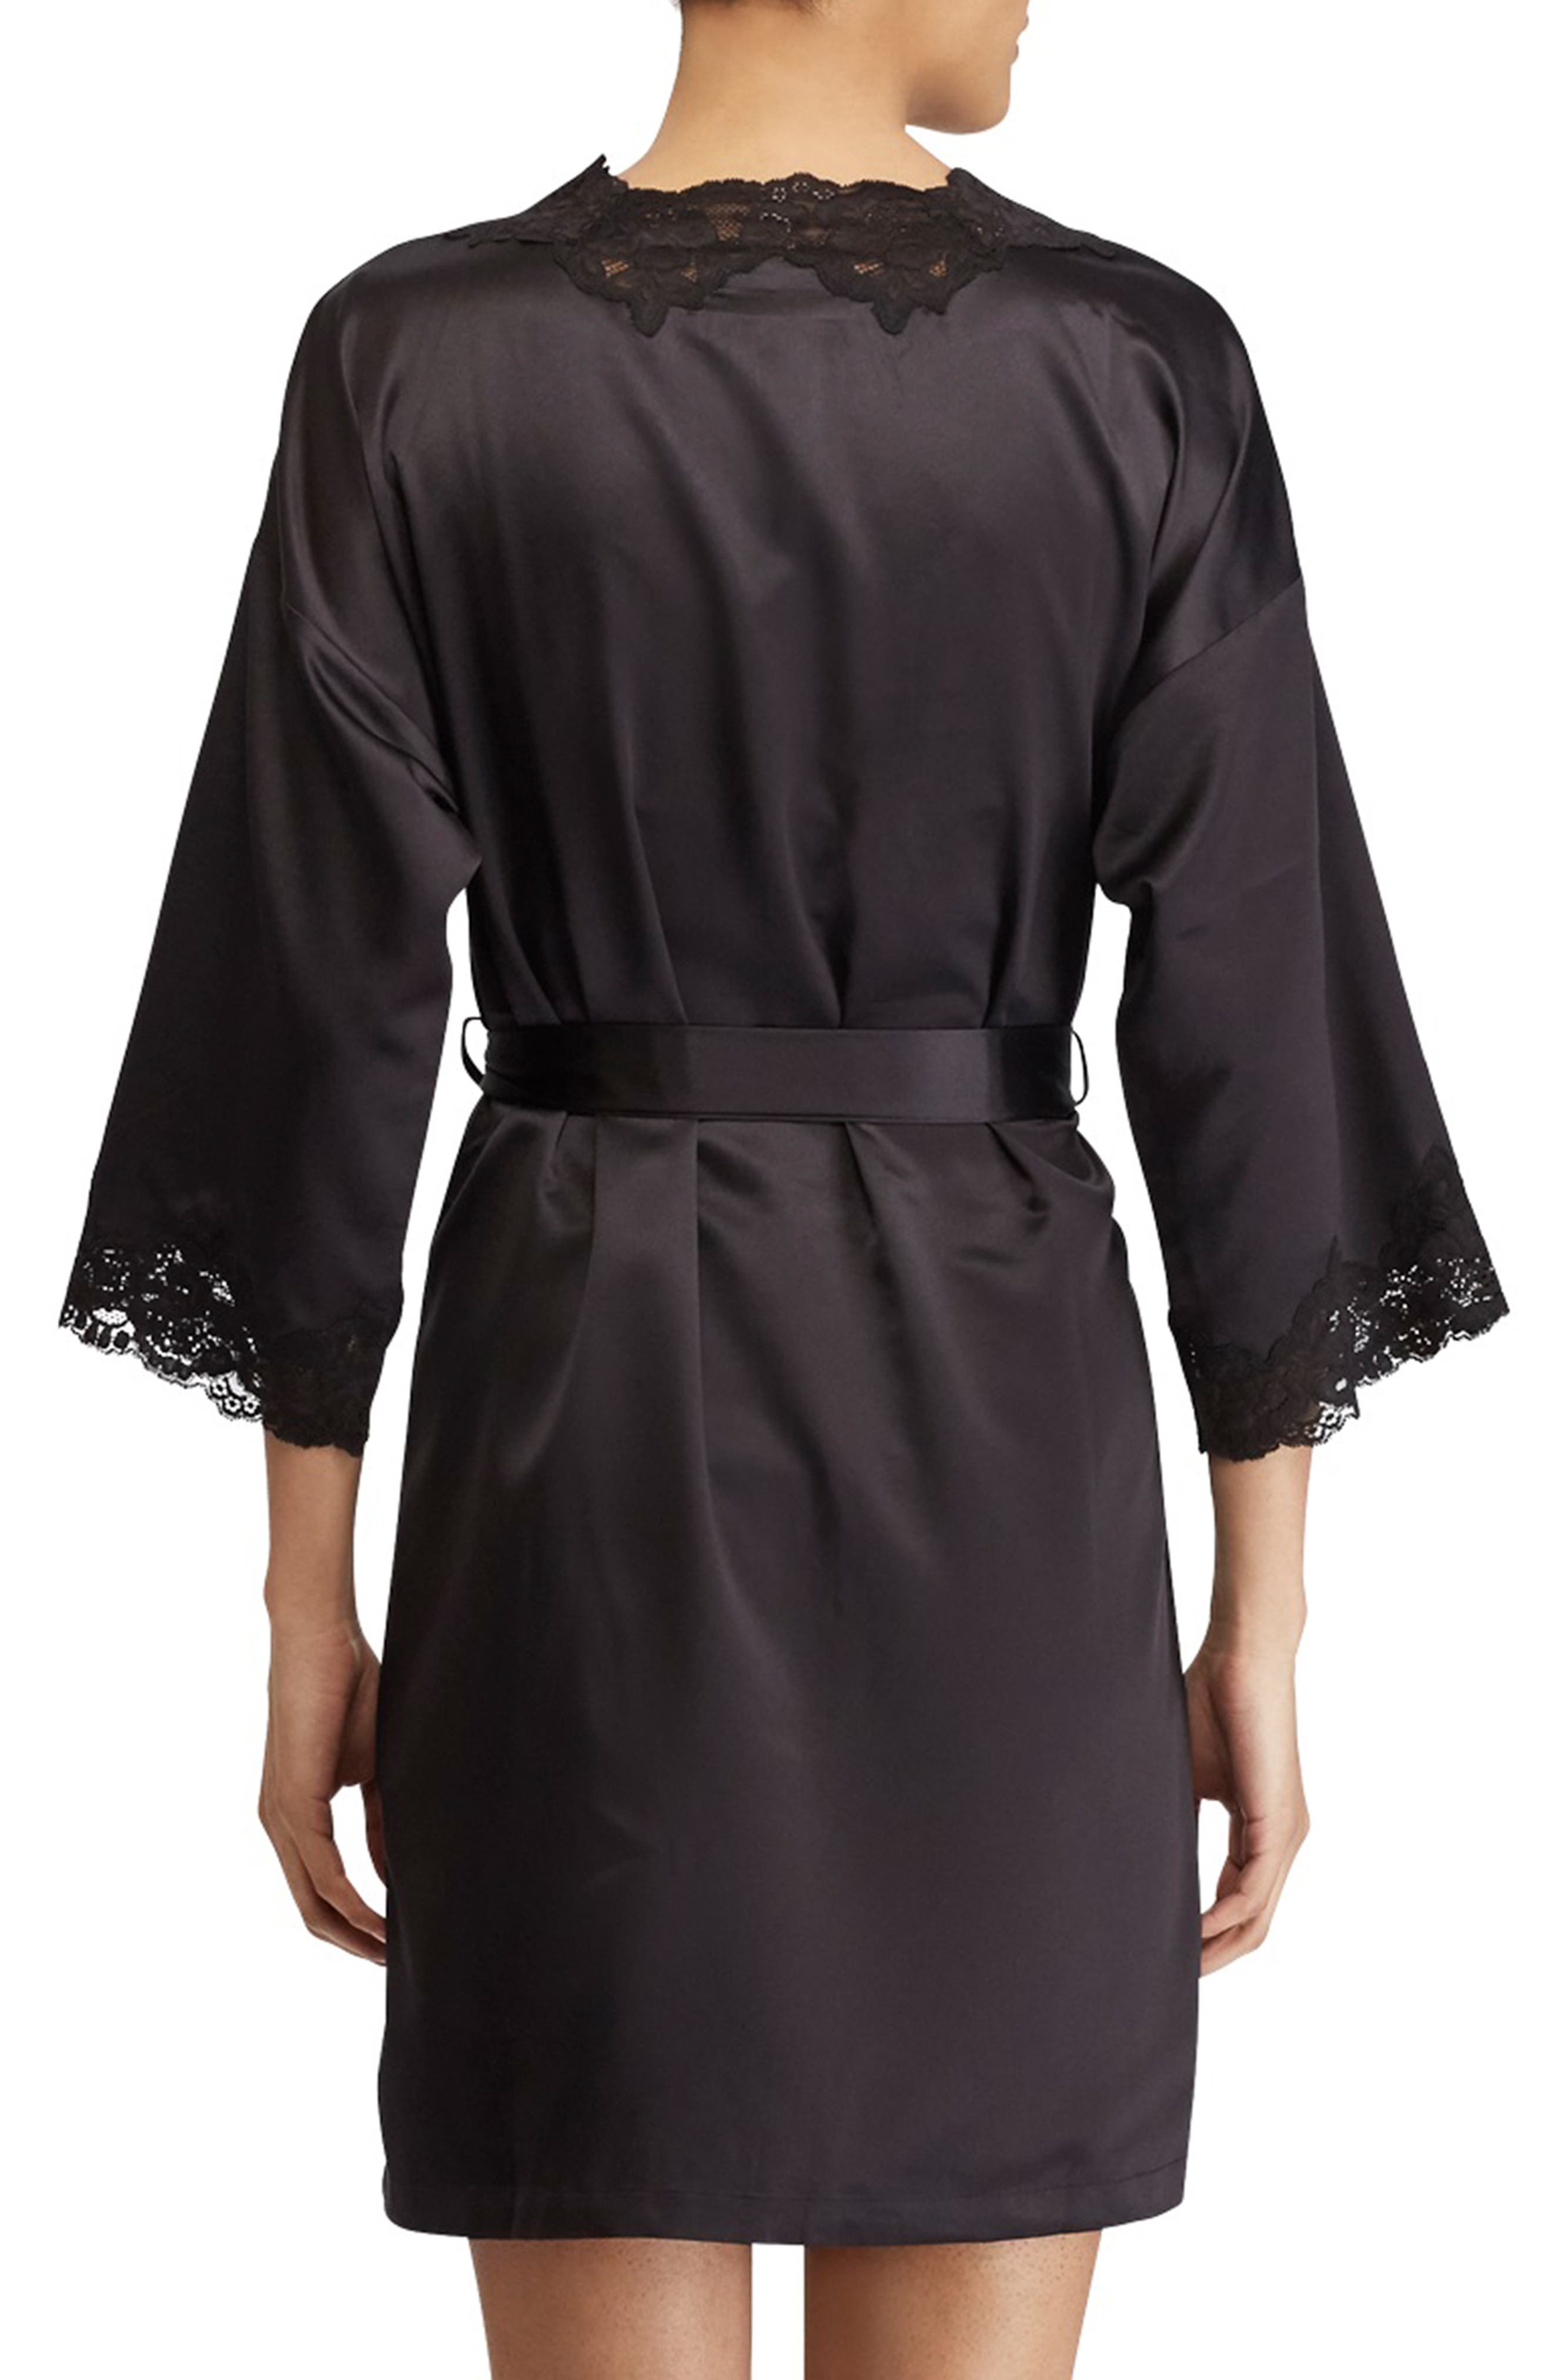 LAUREN RALPH LAUREN, Lace Trim Satin Robe, Alternate thumbnail 2, color, BLACK